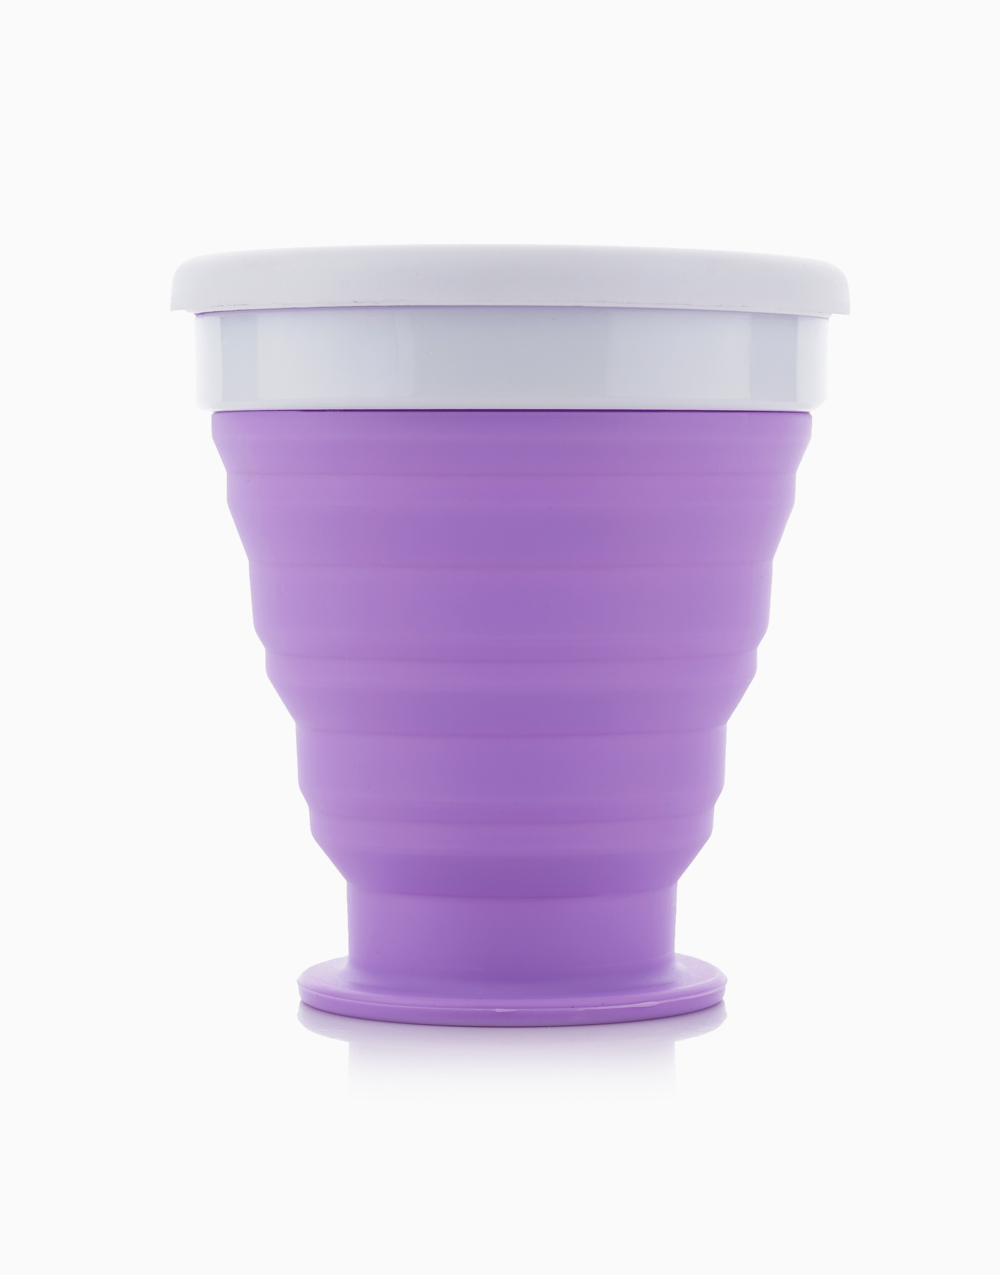 Anytime Disinfection Cup by Anytime Menstrual Cup